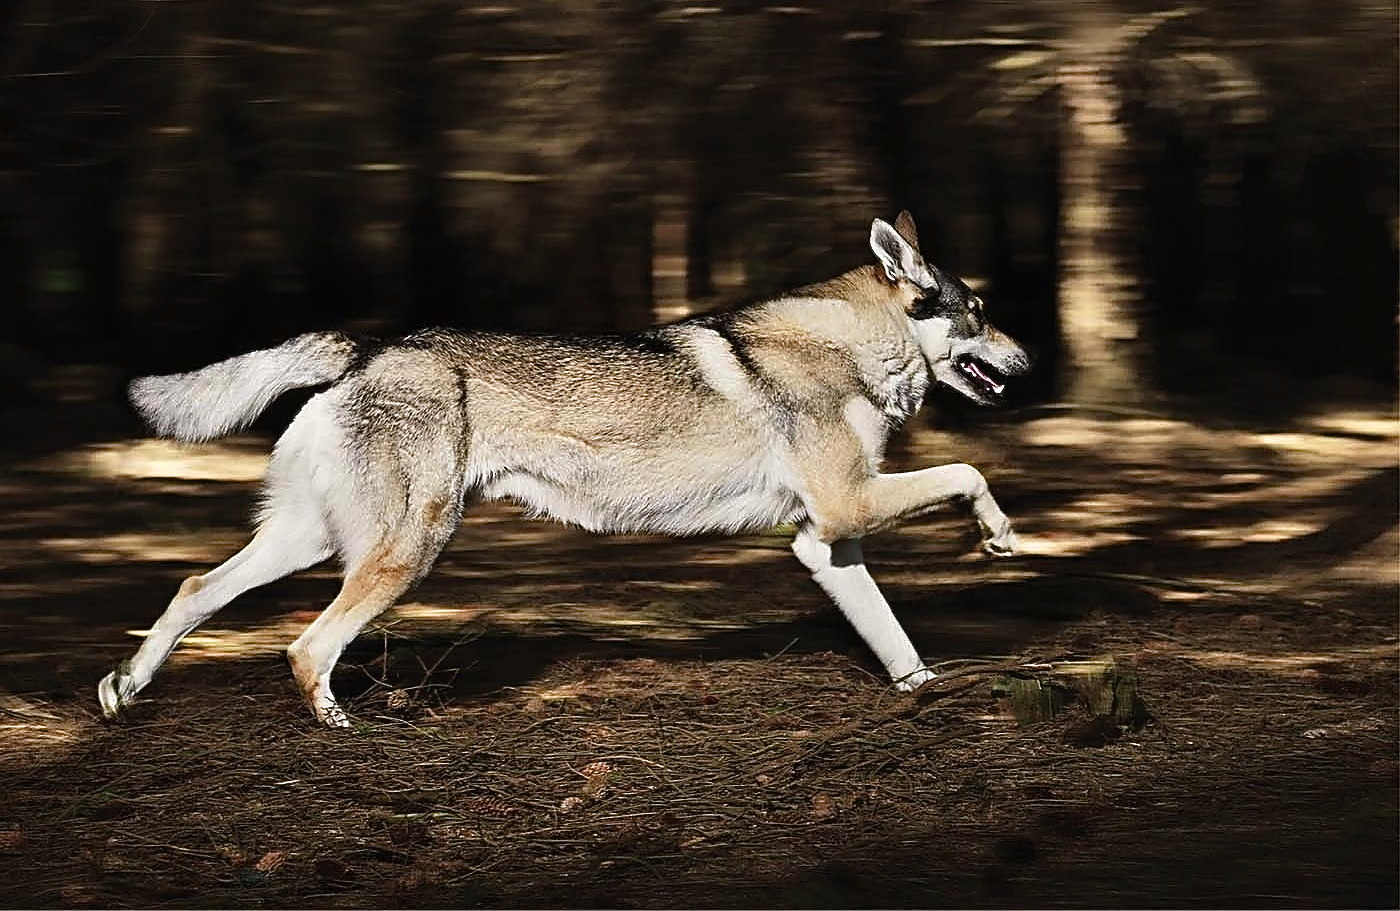 loups-solitaires-hd